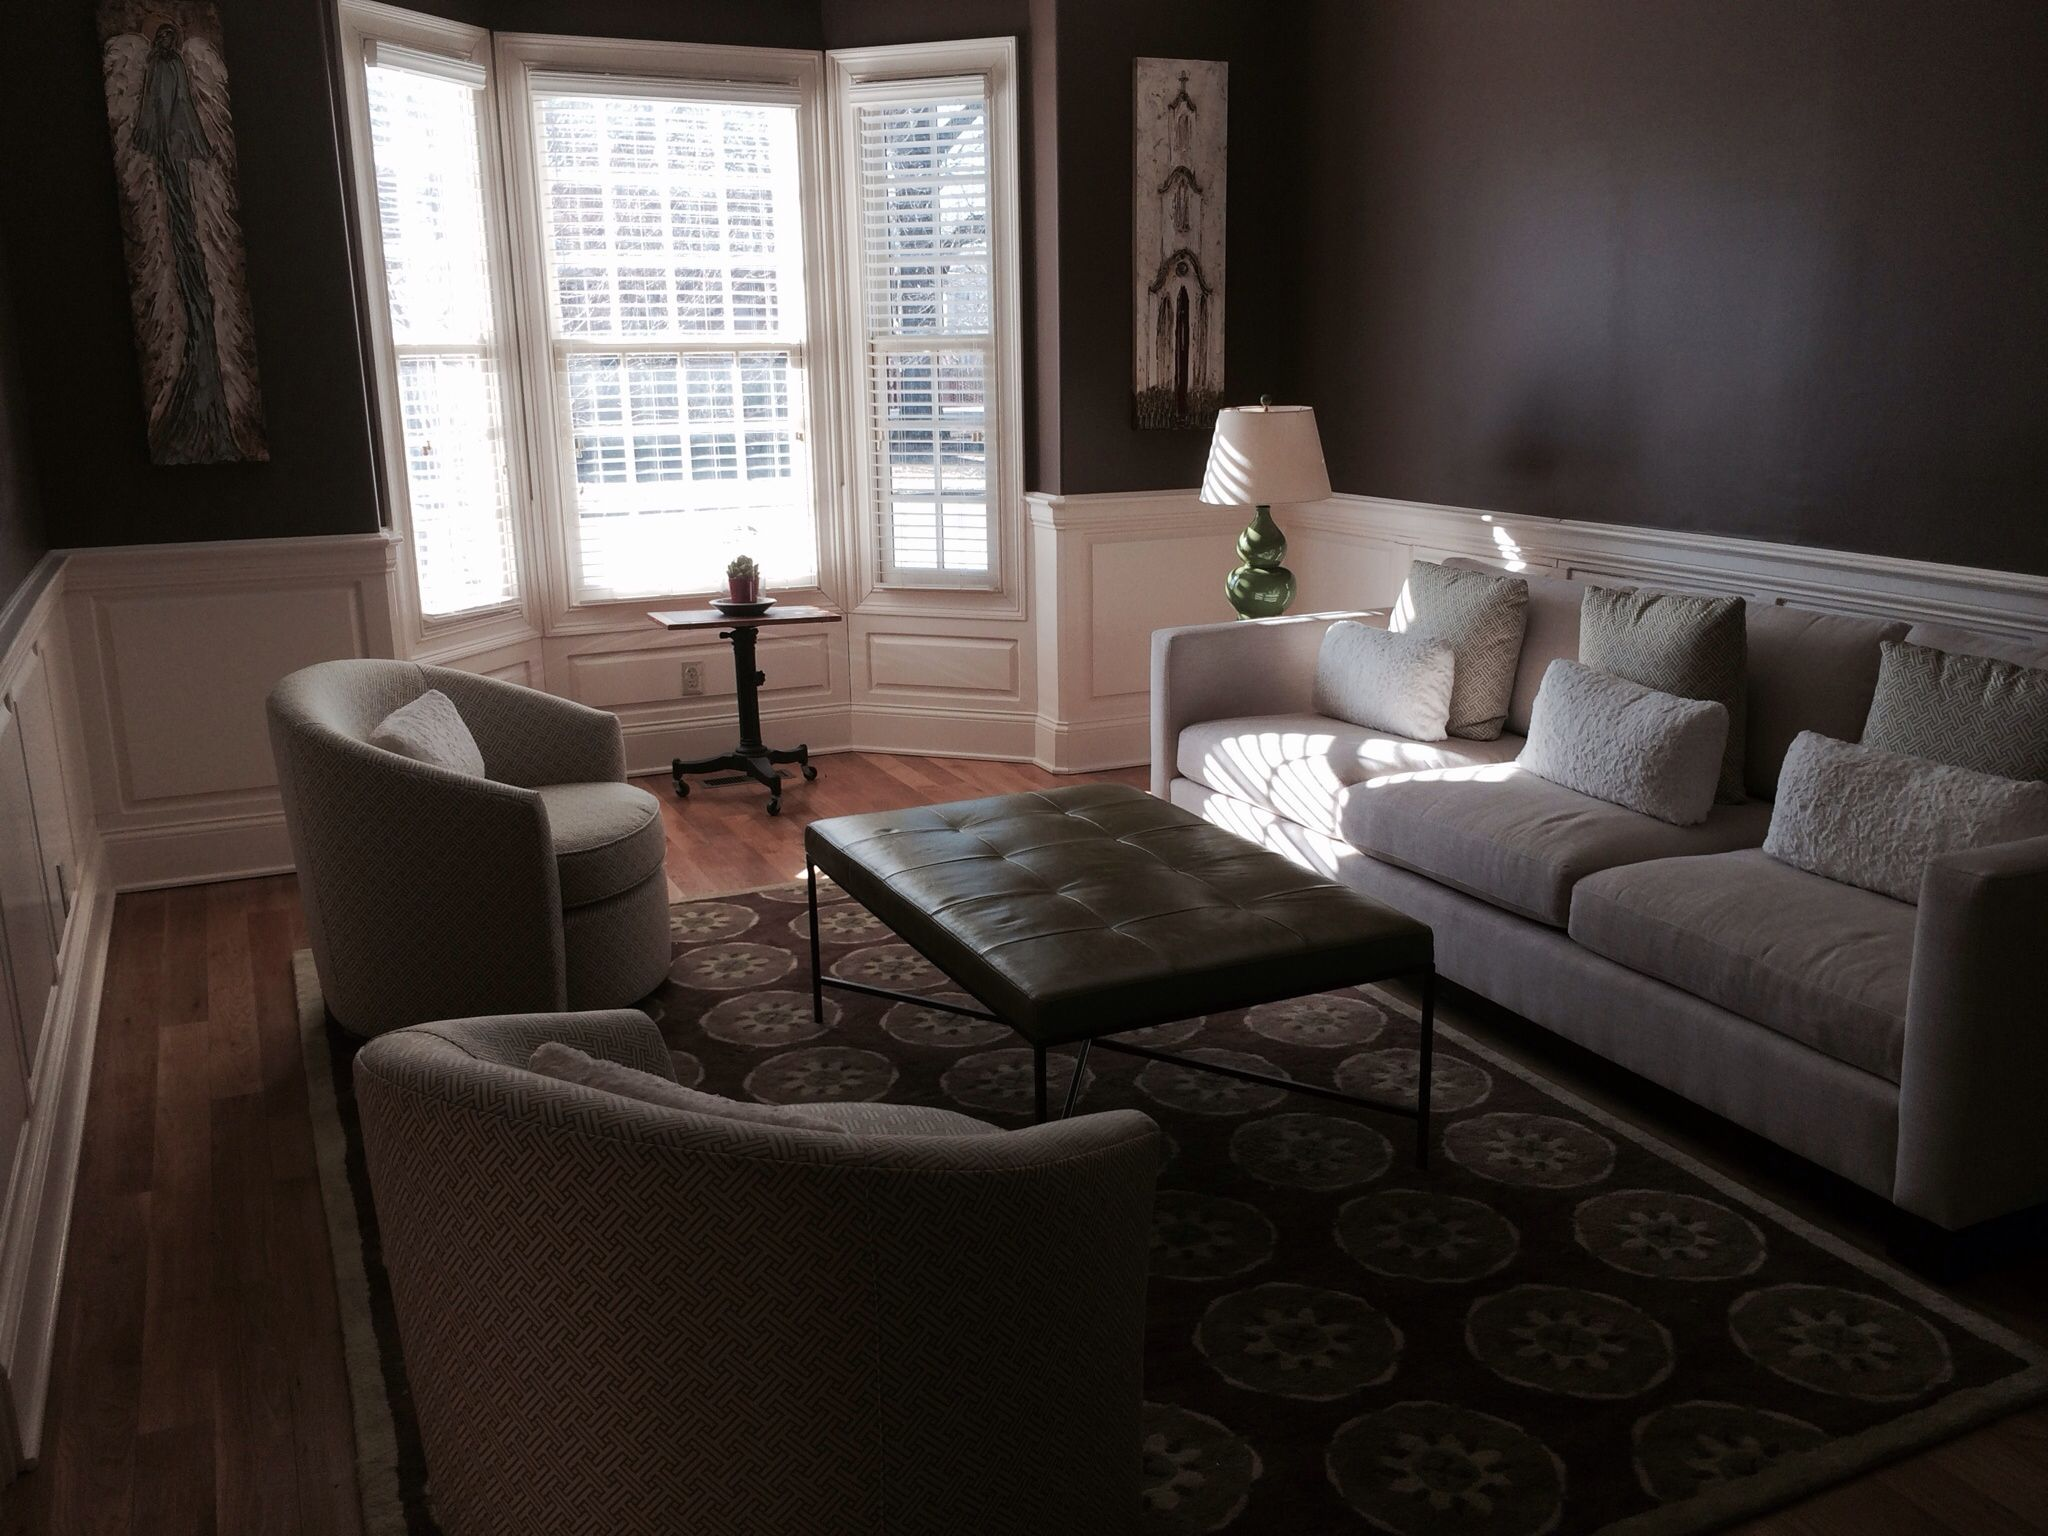 Blossomwood white, lime green, and chocolate brown living room with Bernhardt upholstery and faux fur pillows by Richard Cable